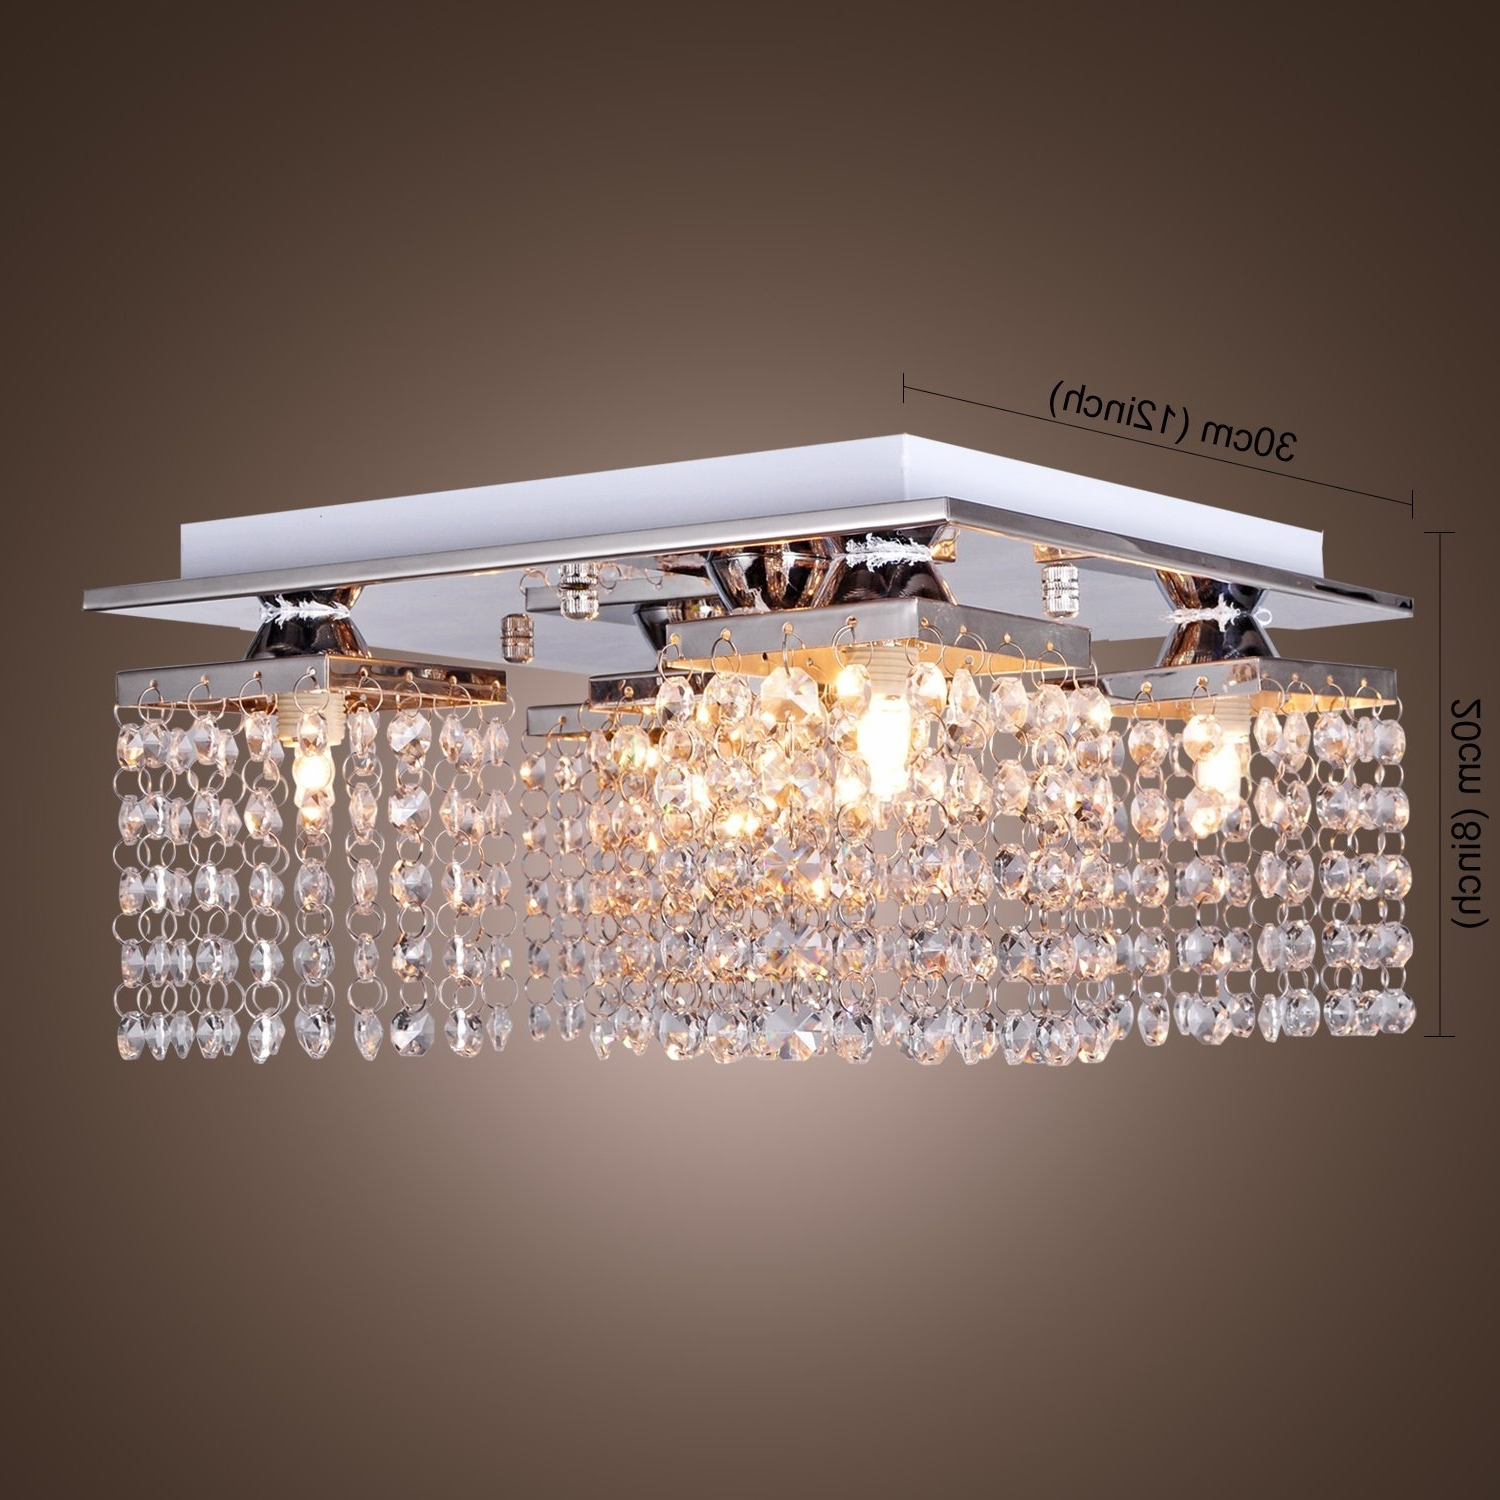 Chandeliers For Low Ceilings For Most Recent Ceiling: Lighting For Low Ceilings (View 2 of 15)